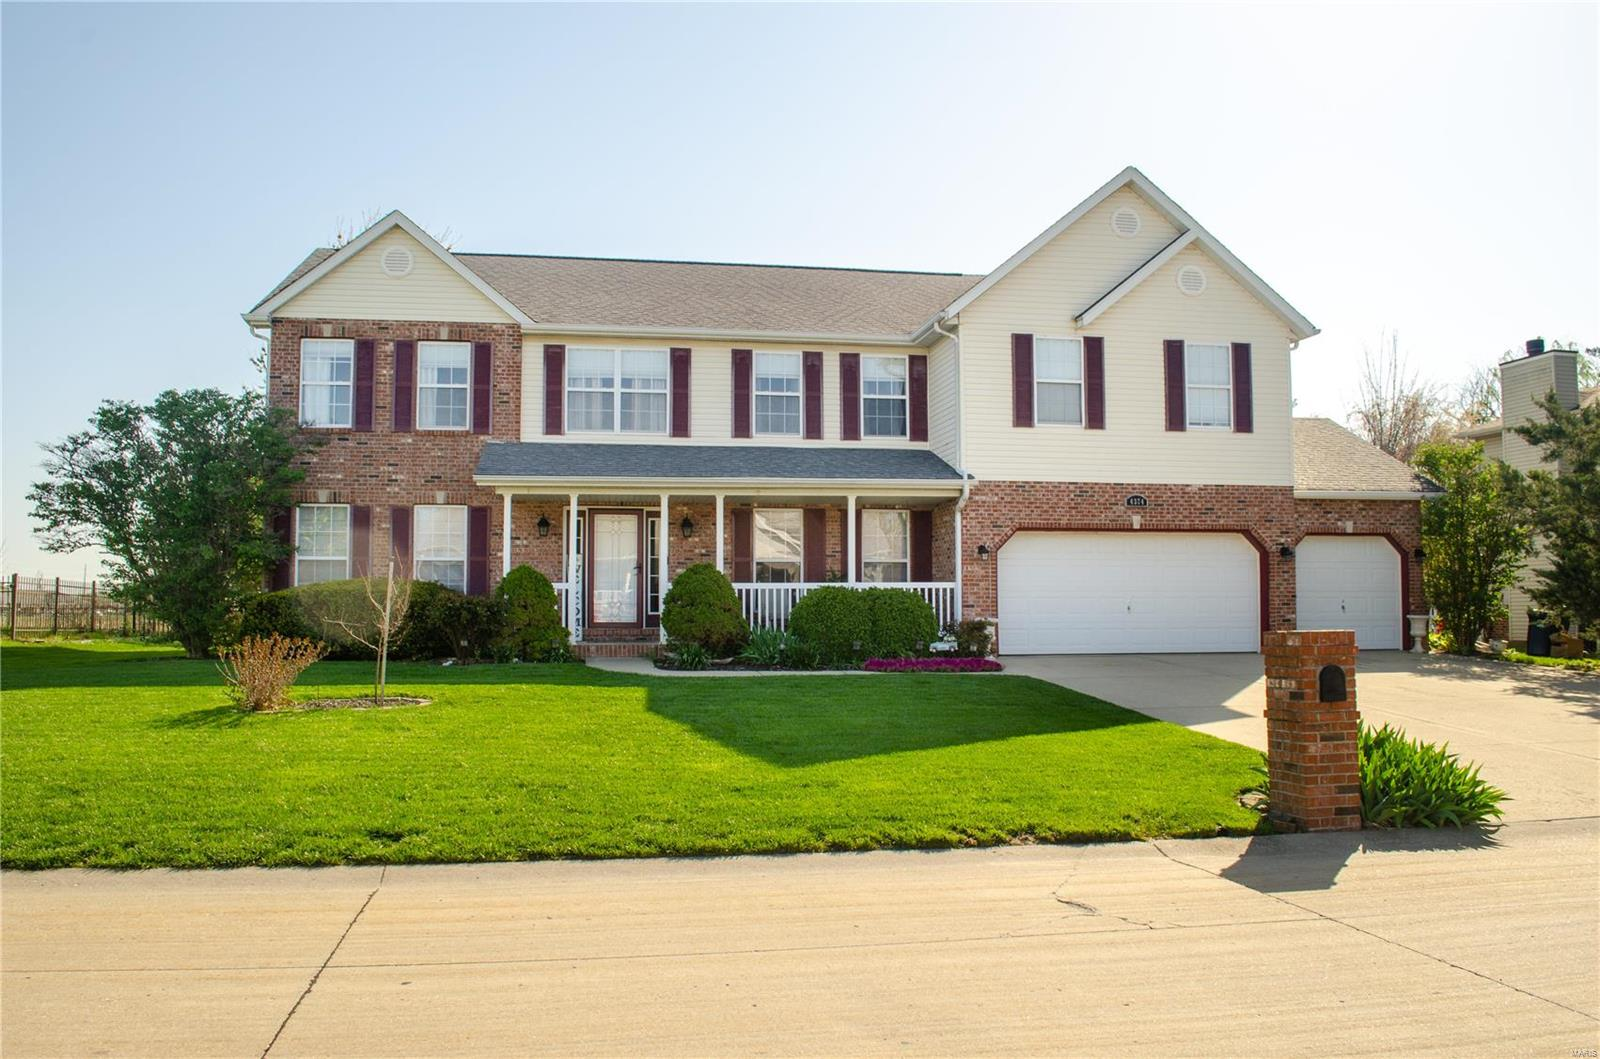 4374 Redfield Drive Property Photo - Swansea, IL real estate listing